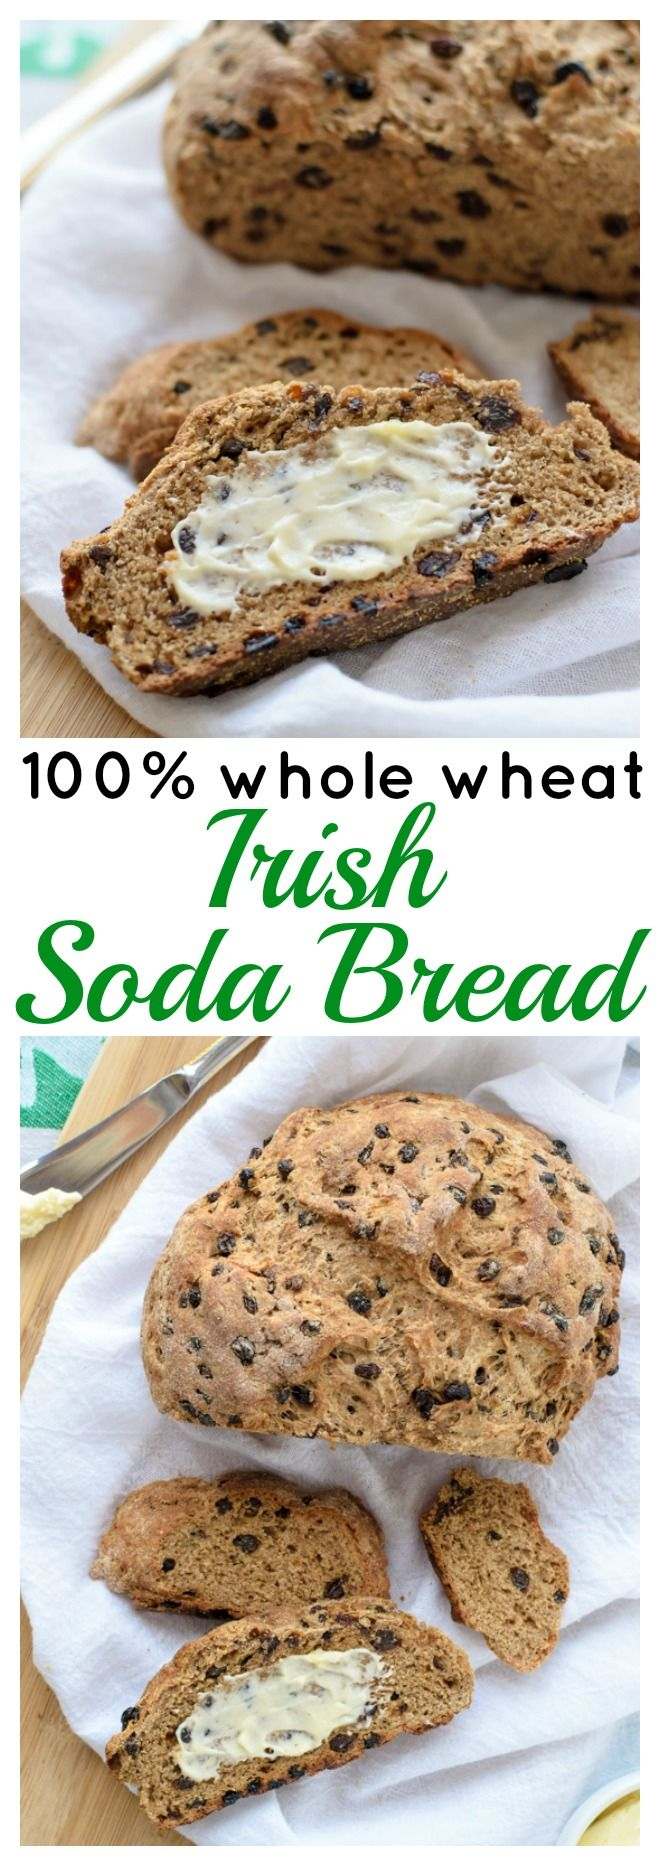 Whole Wheat Irish Soda Bread. Moist, healthy, and delicious! This is the perfect soda bread recipe.